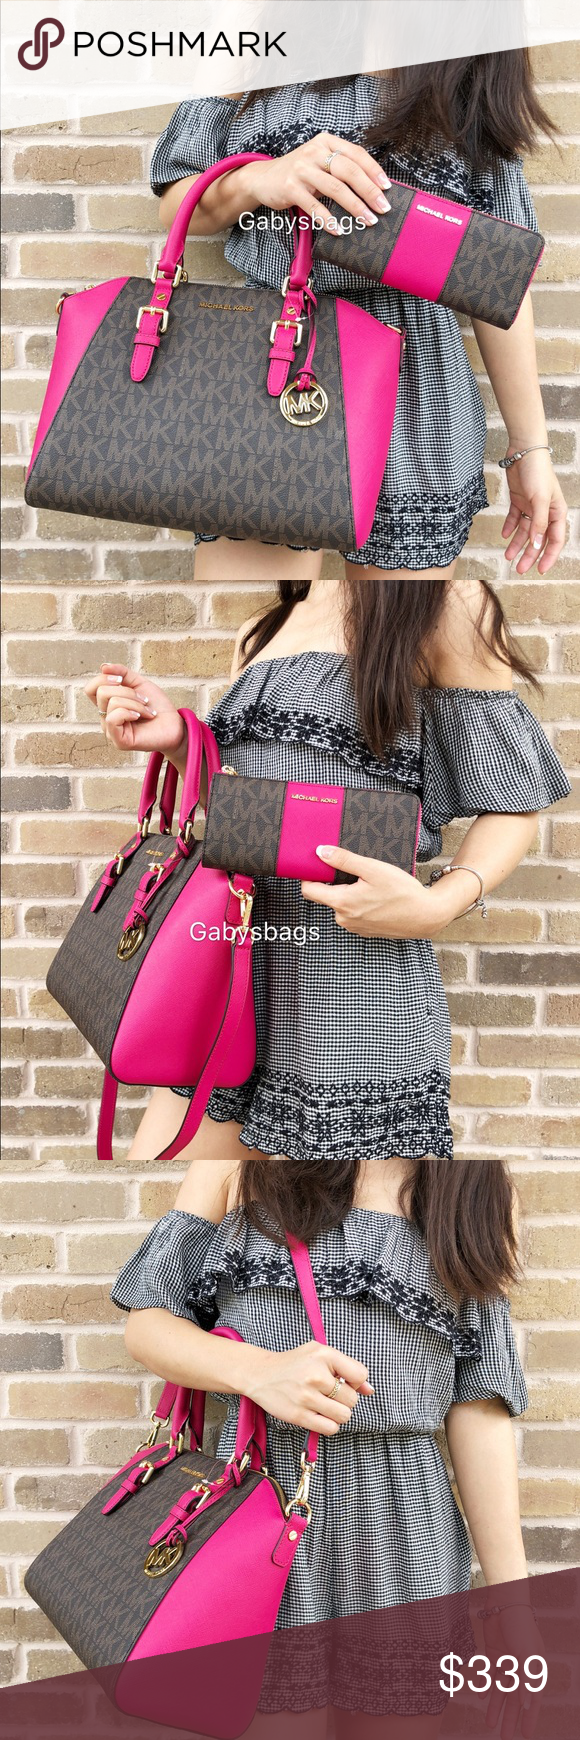 a6e89ae5e3d8 Michael Kors set large Ciara brown MK Pink Satchel Both brand new with tags  Authentic Michael